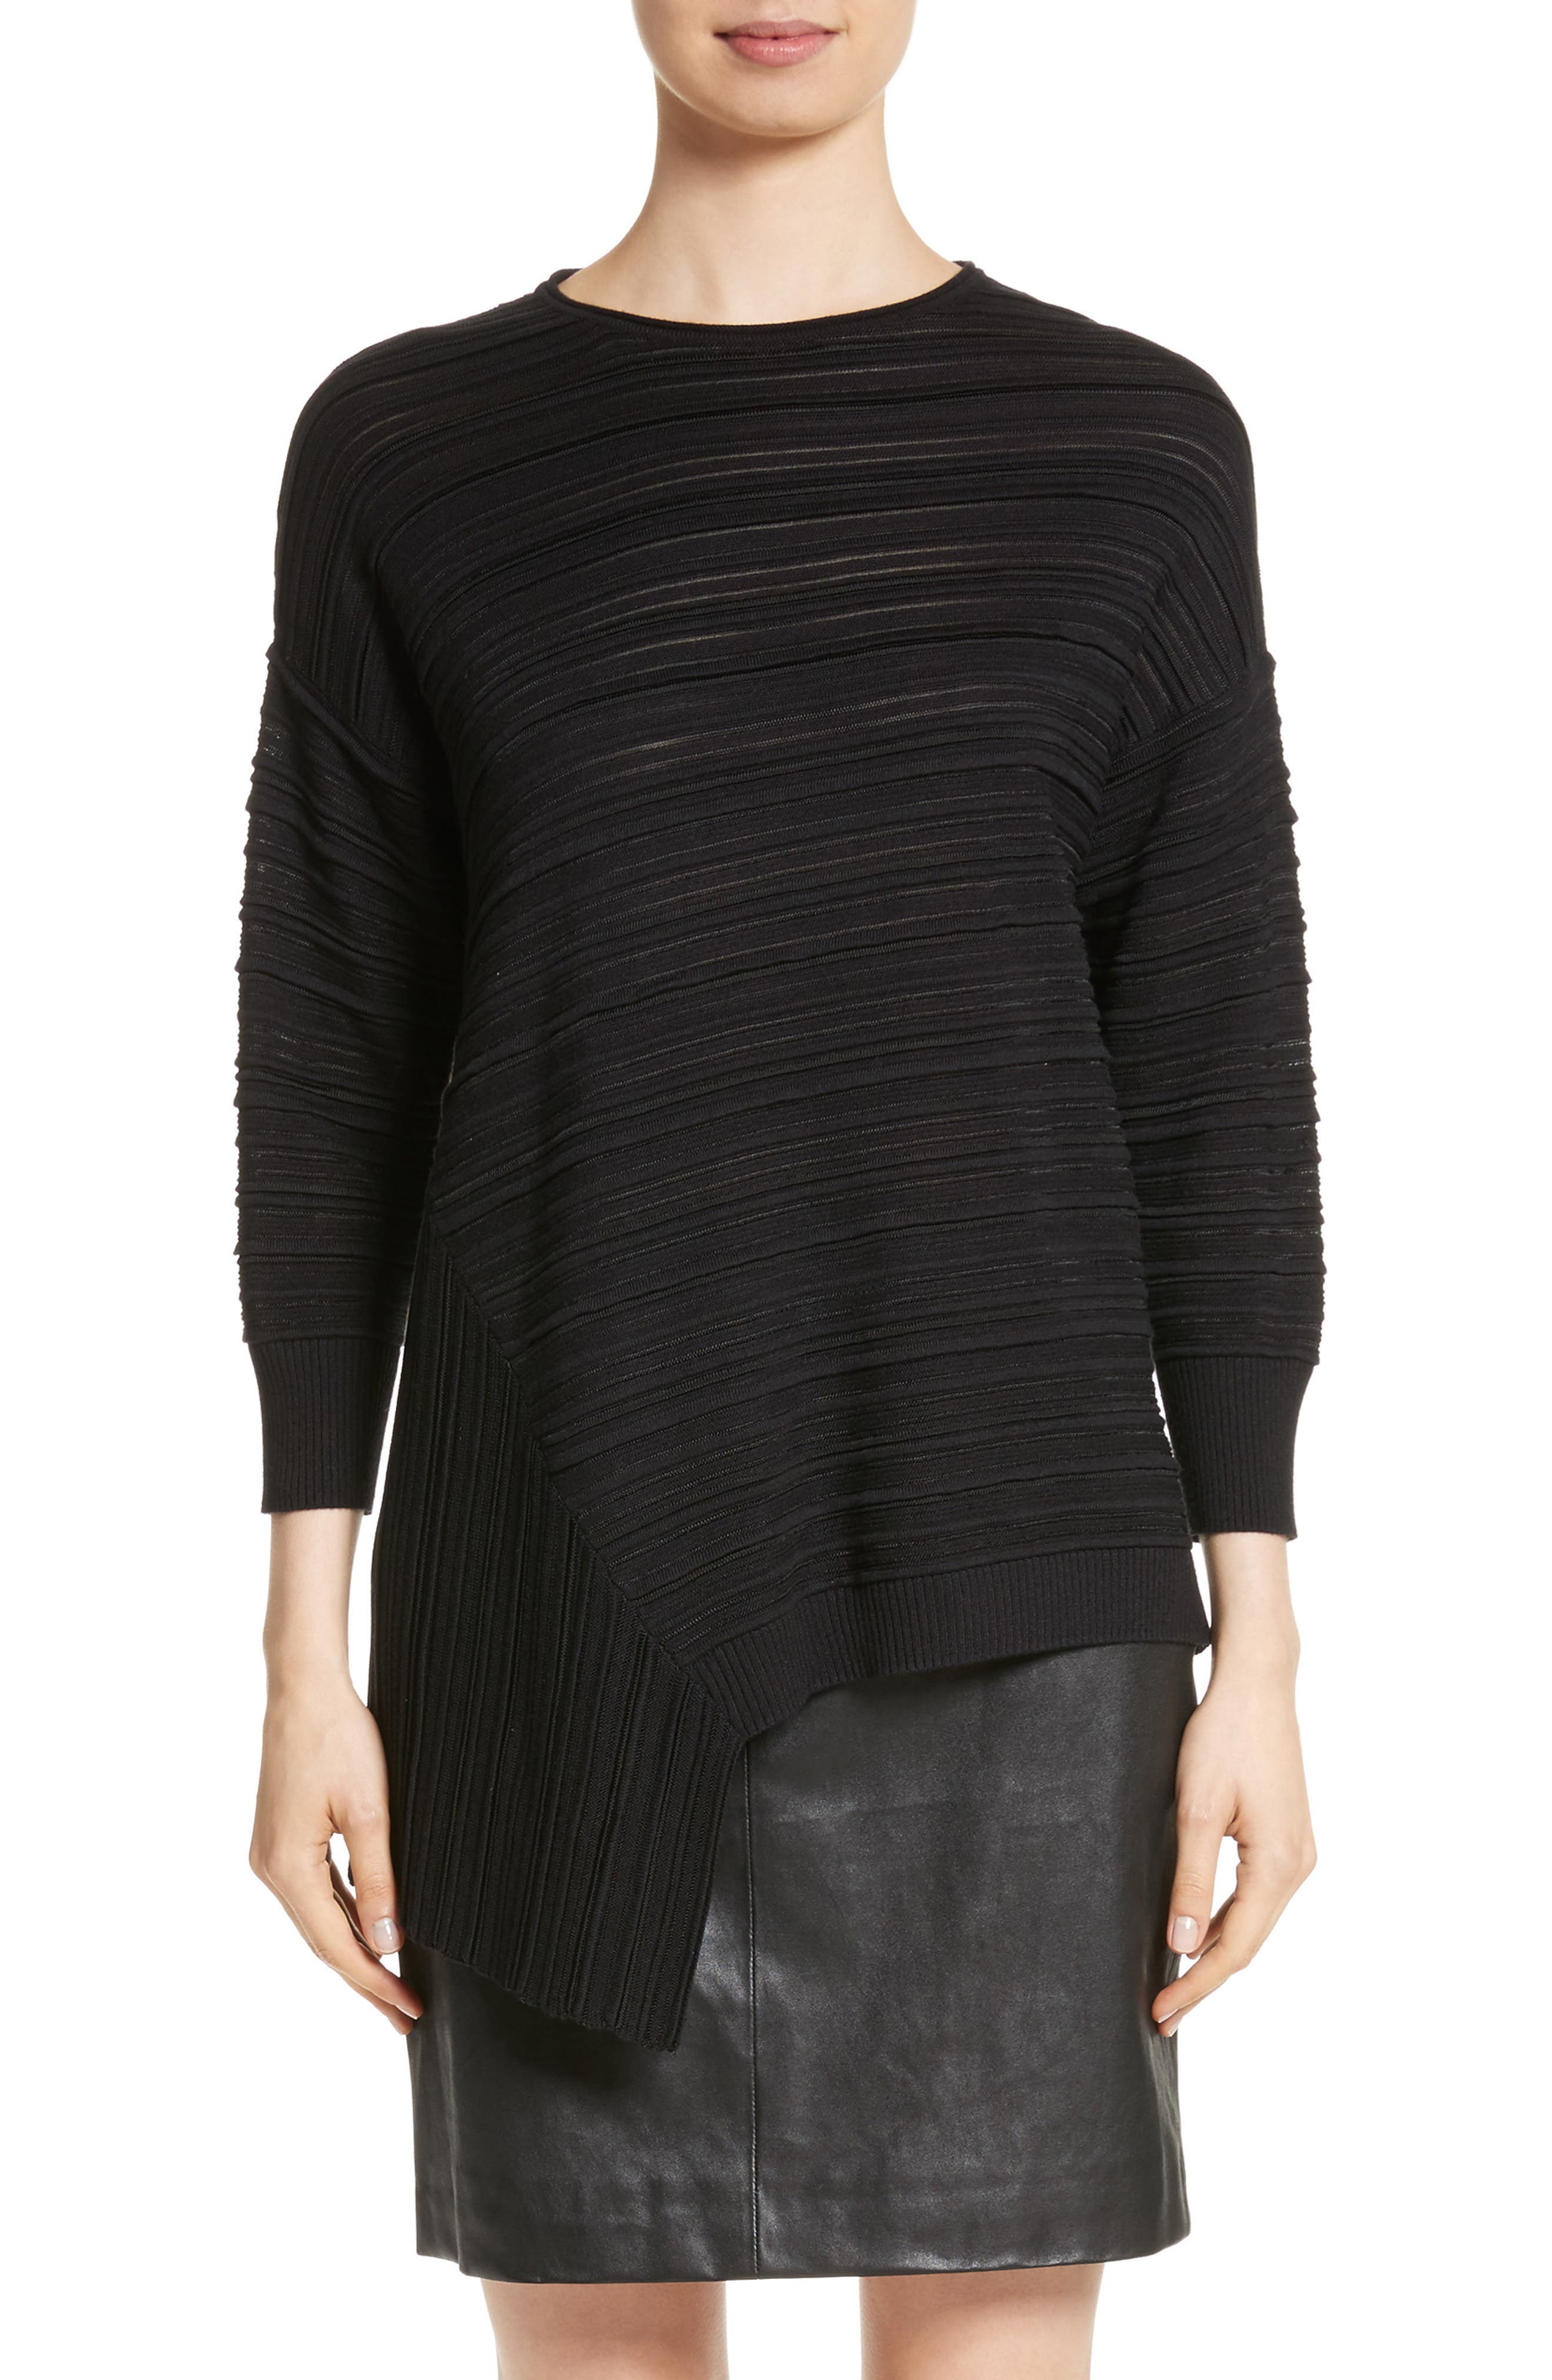 St. John Collection Knit Asymmetrical Sweater